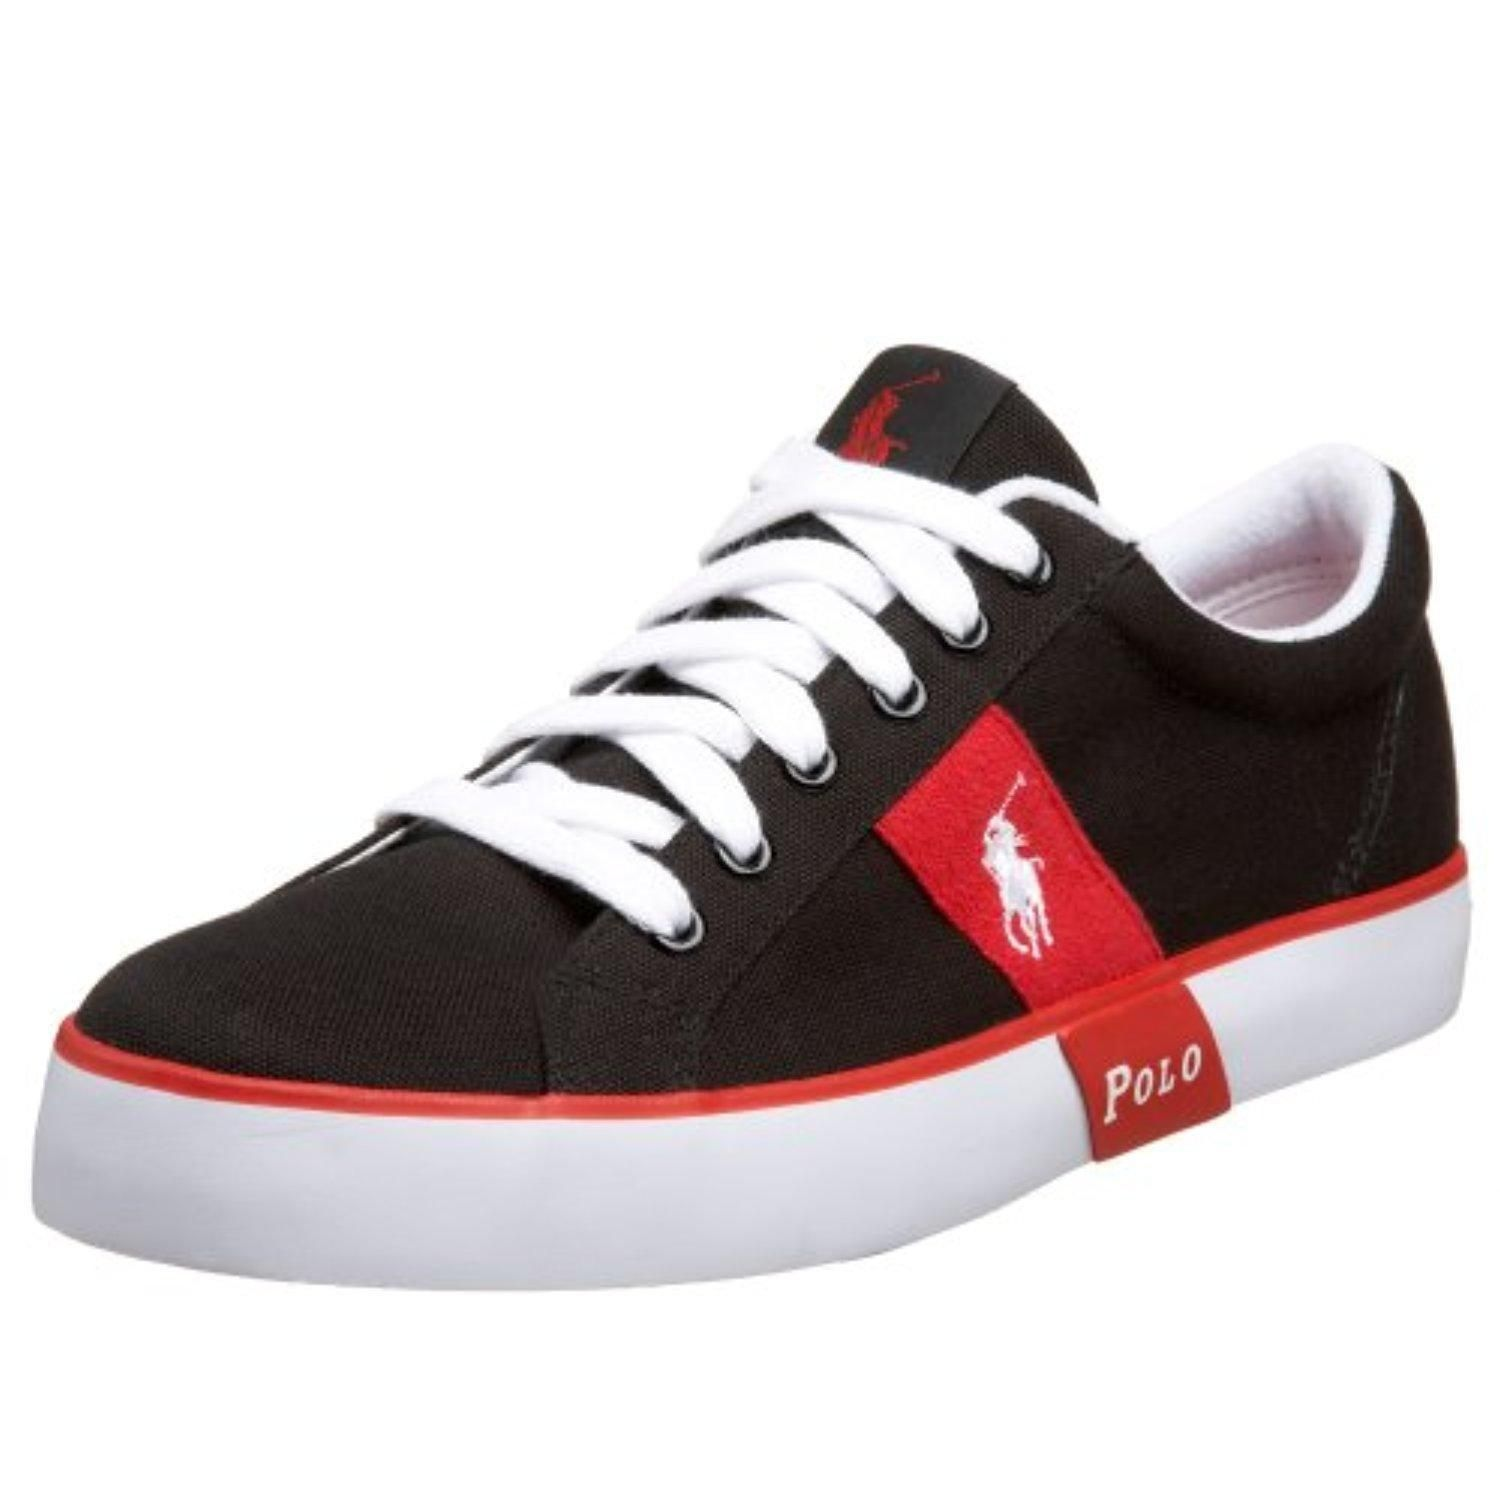 Polo Ralph Lauren  Men's Giles Canvas Sneaker,Black/Red,10.5 D - Brought to you by Avarsha.com